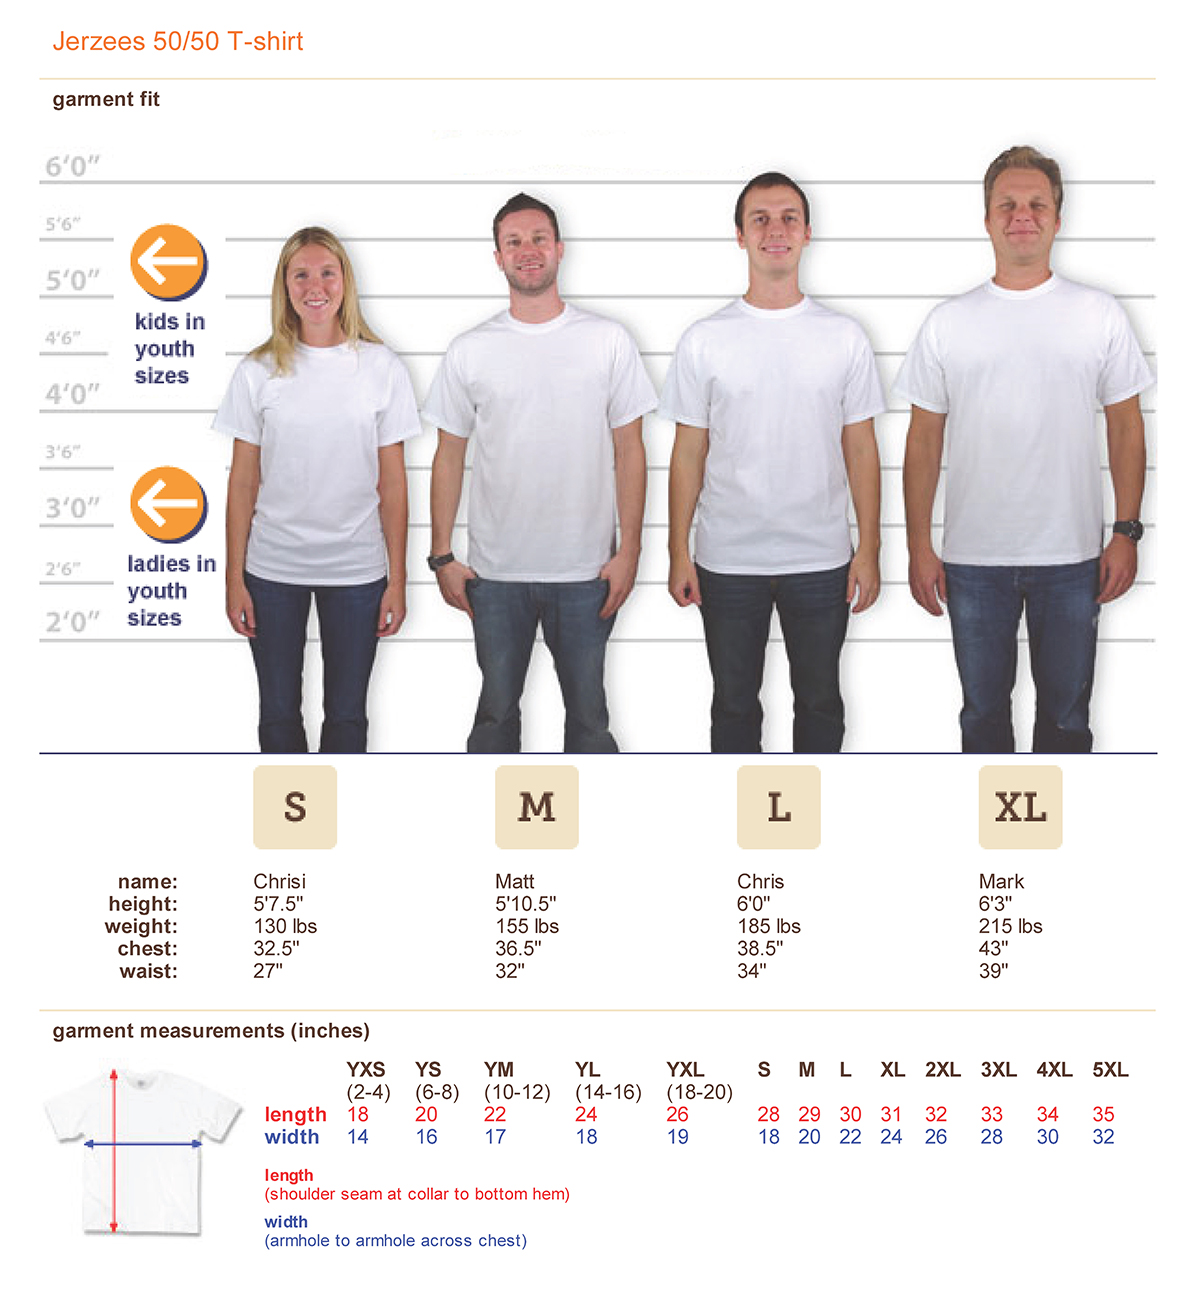 Dec 15, · lemkecollier.ga Sizing Chart - I love this website and frequently purchase shirts. While the cut of the men's and women's shirts are different, even the specific measurements are quite different. When looking at chest size, a Men's Medium is between a Women's Medium and Large, but the length on the Men's Medium is the same as the Women's extra large.